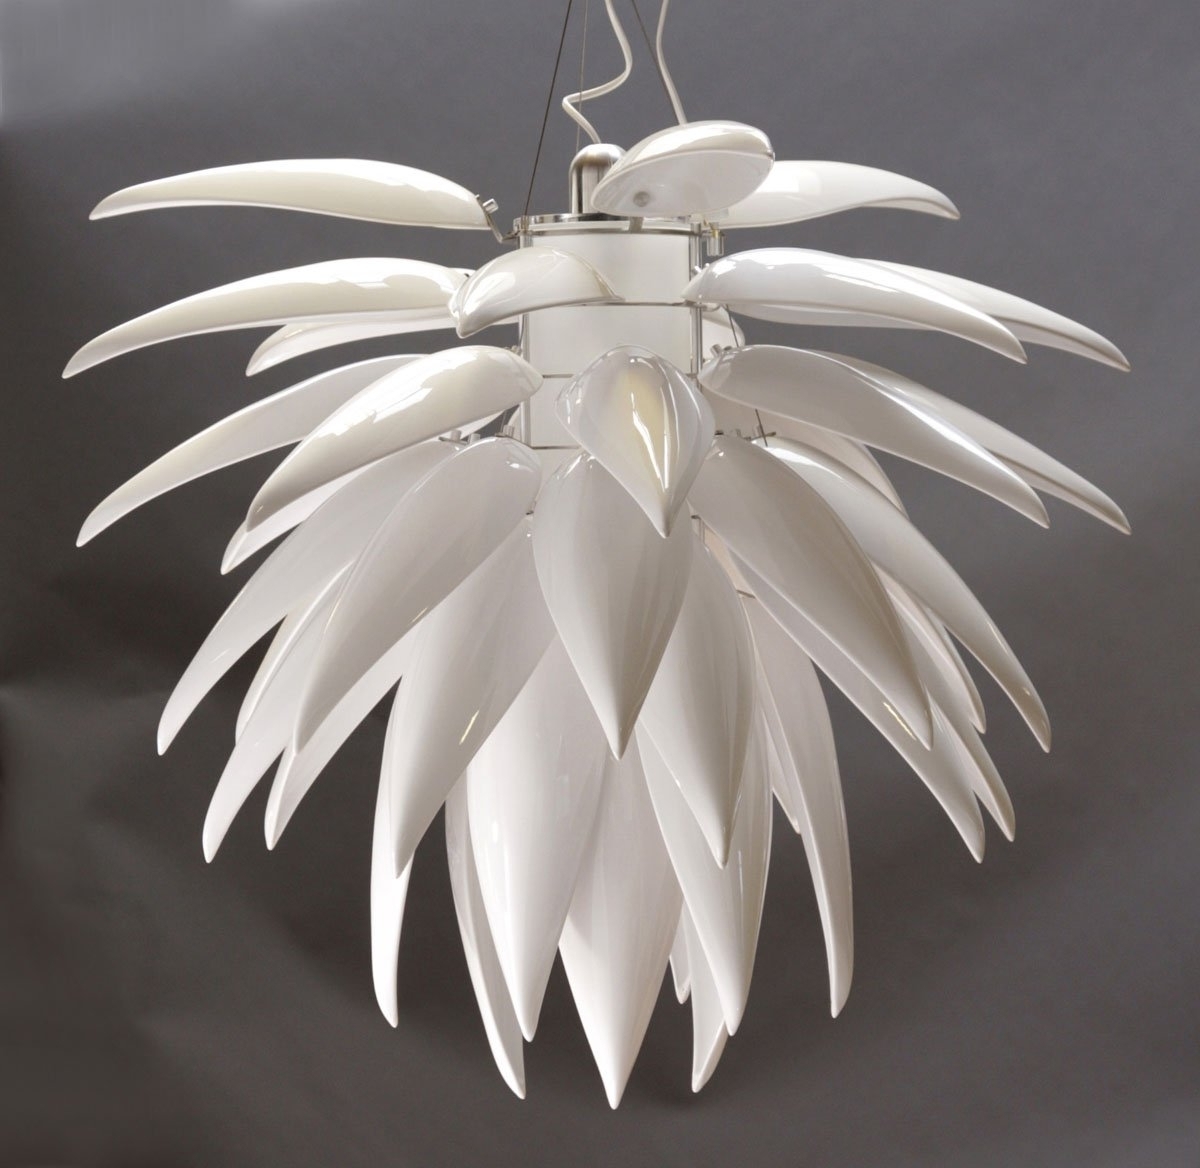 Contemporary Lighting Chandeliers White : Antique Contemporary Inside Most Popular White Contemporary Chandelier (View 6 of 20)